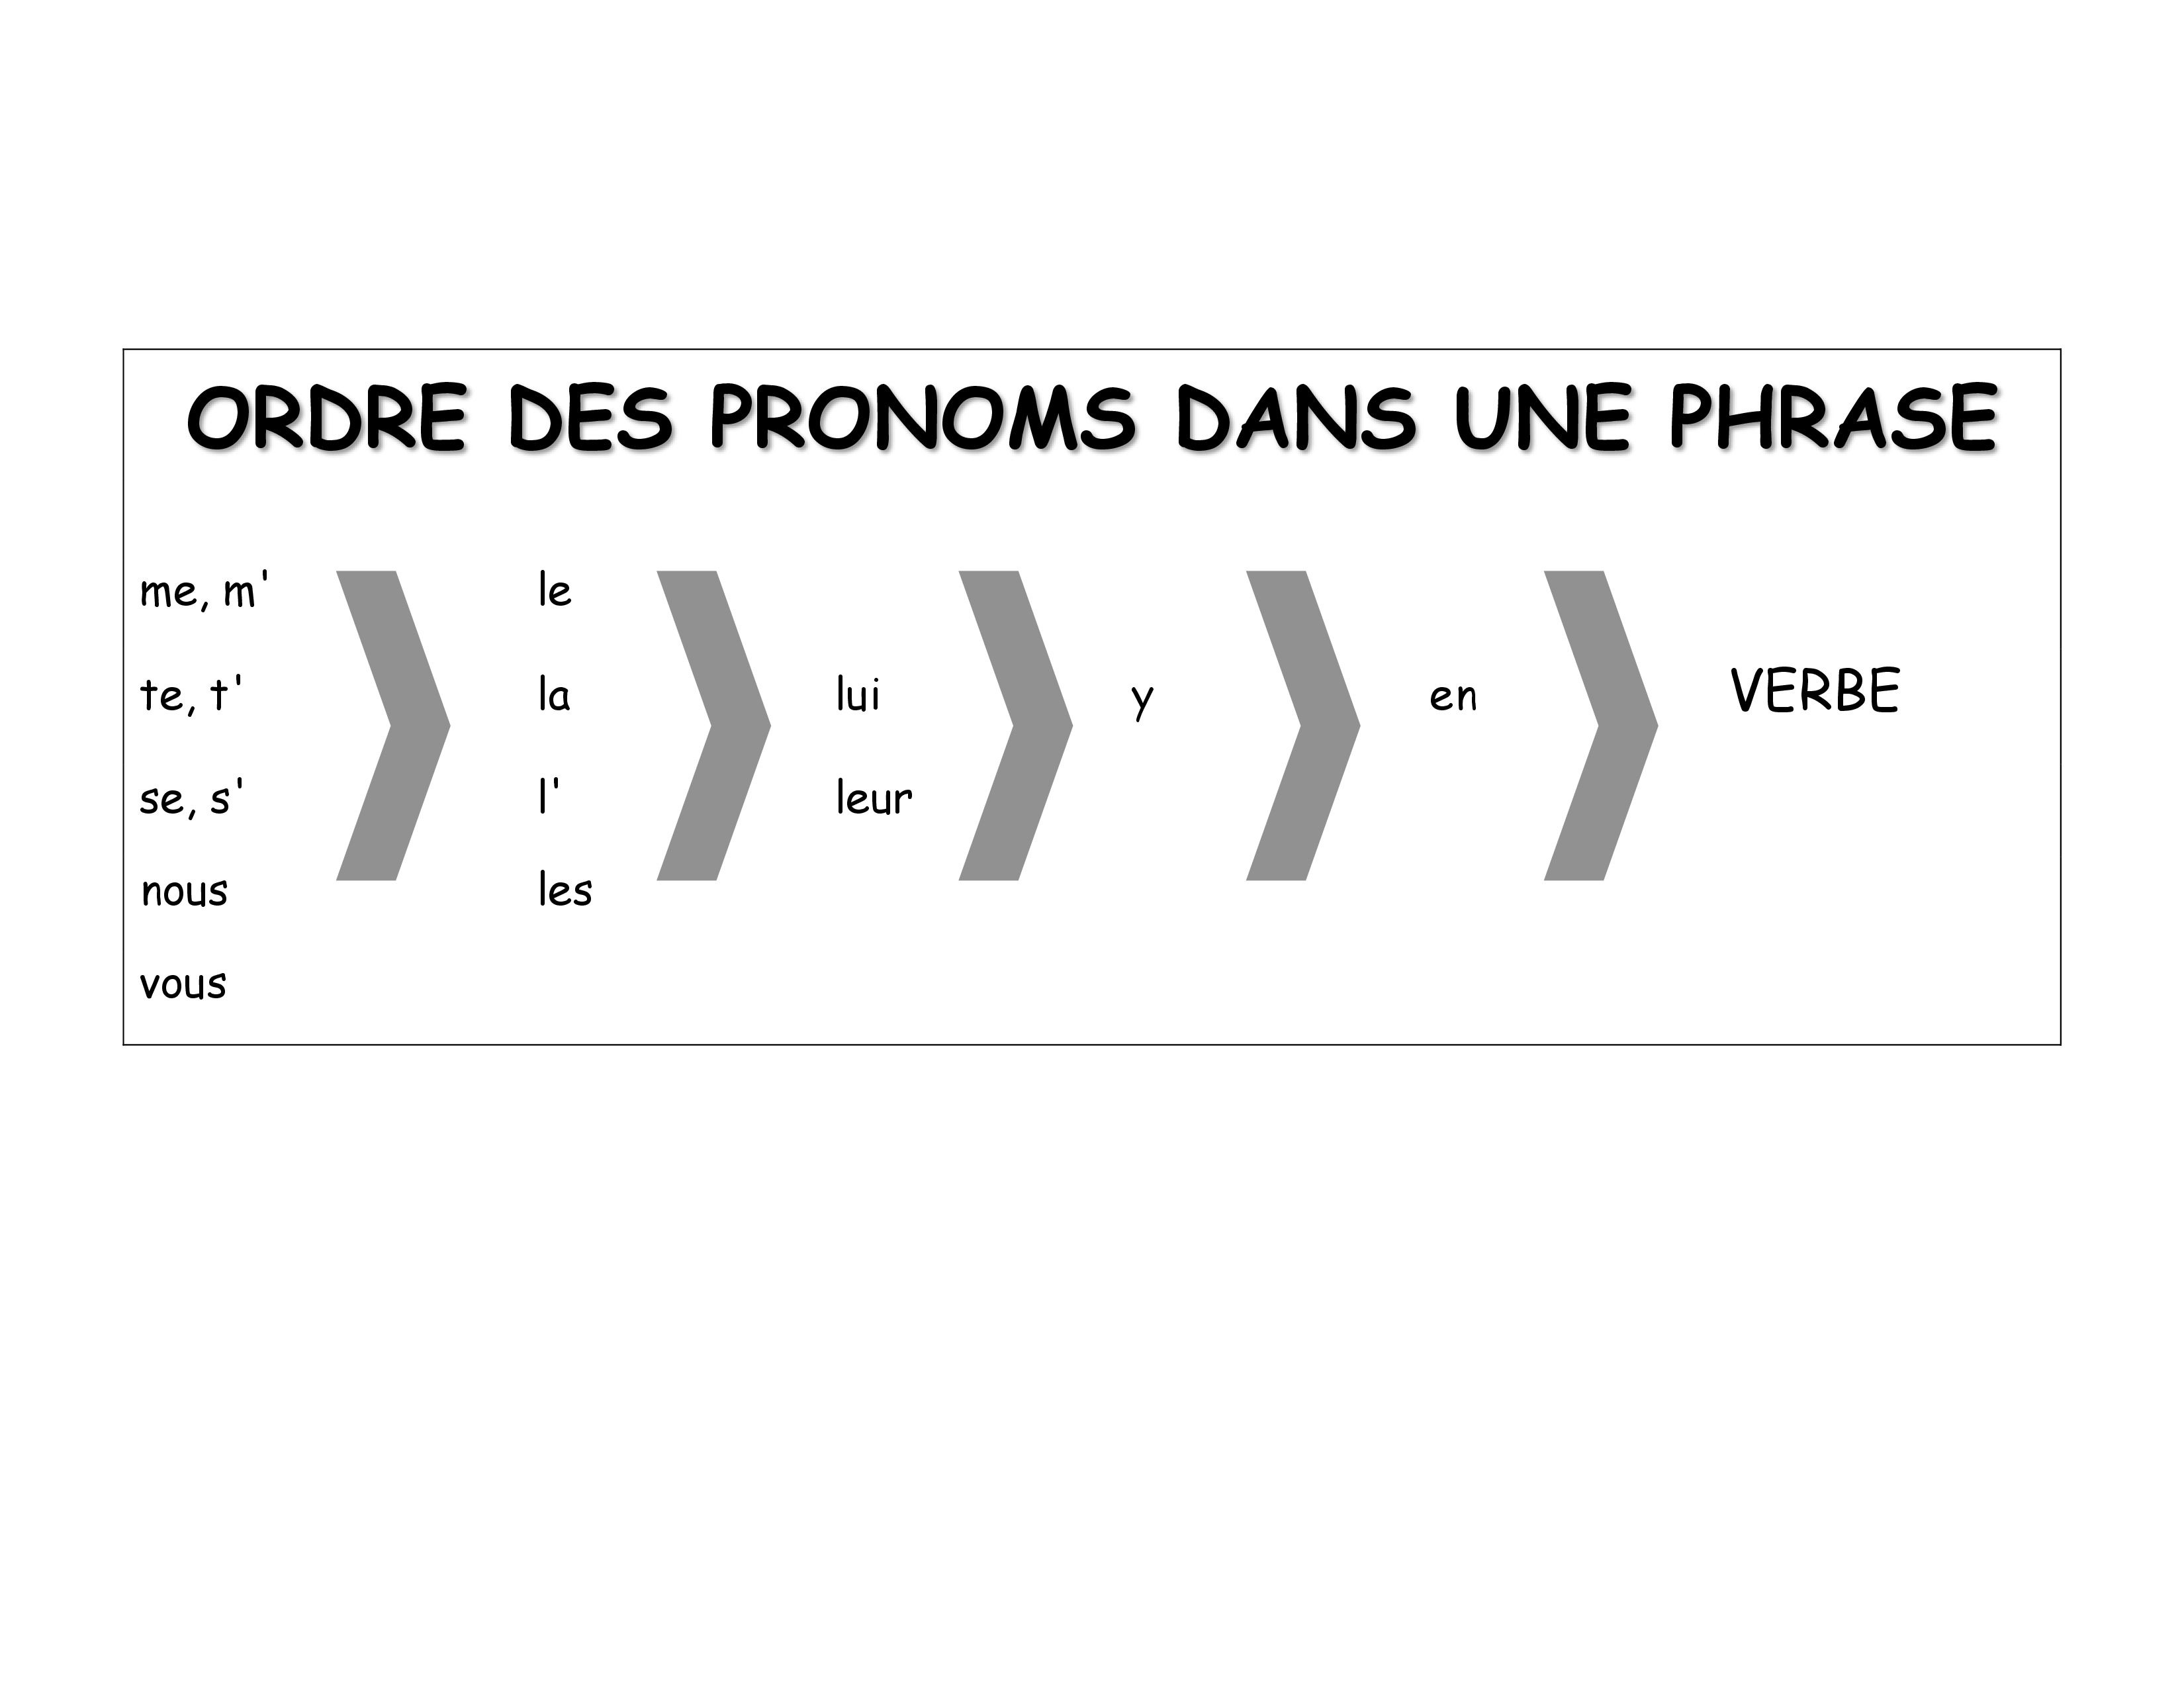 French Grammar Order Of Pronouns In A Sentence